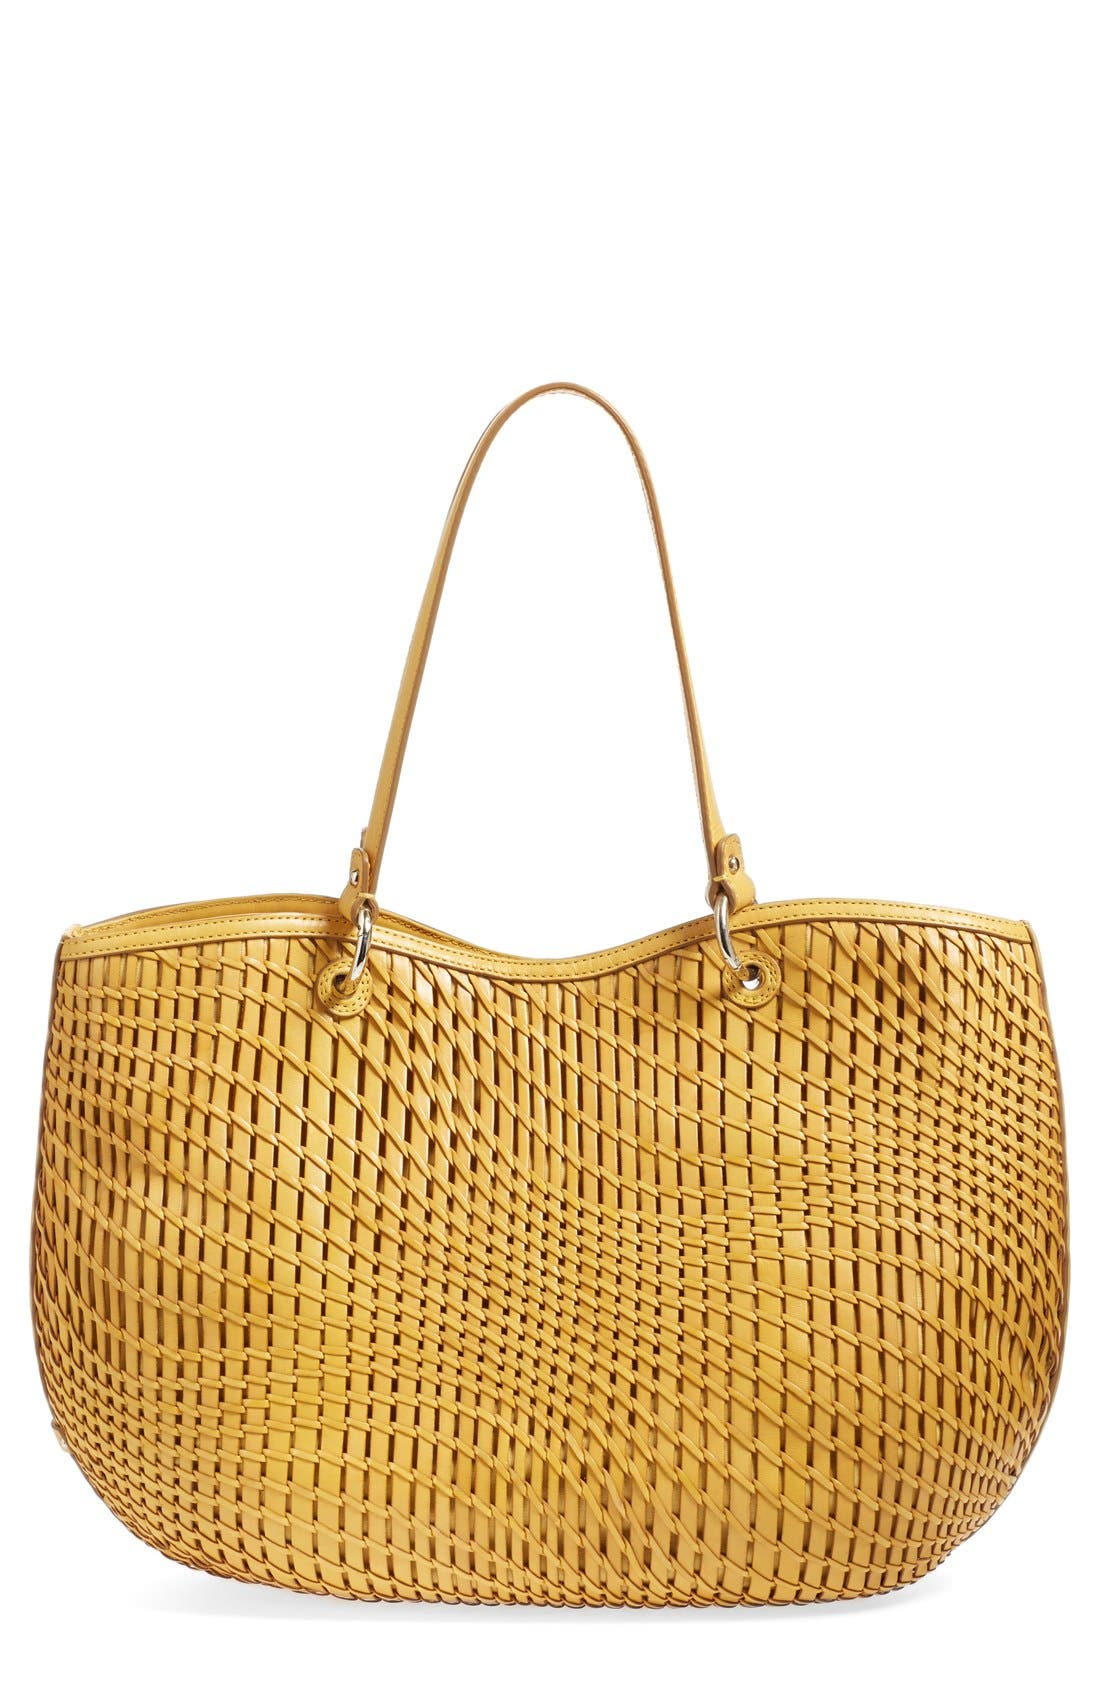 Main Image - Cole Haan 'Genevieve' Open Weave Leather Tote